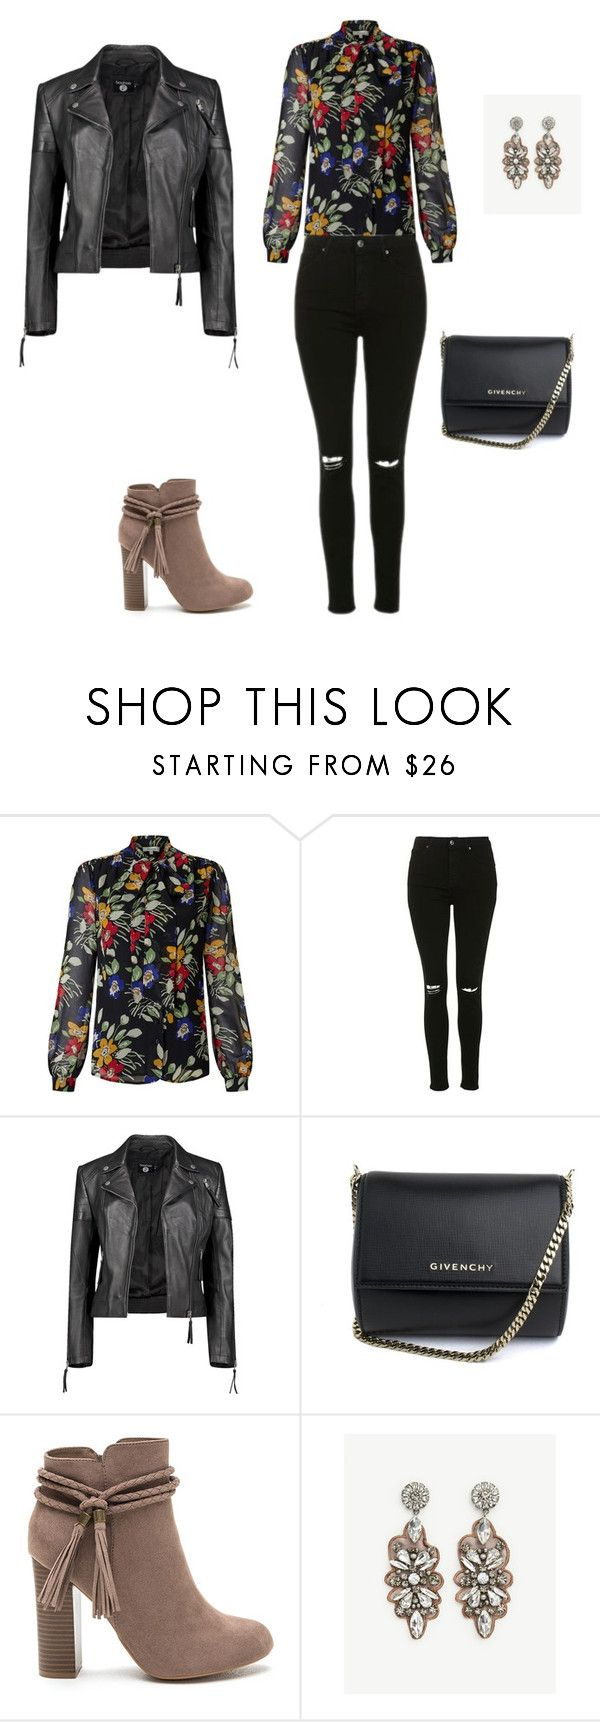 """Bez naslova #1070"" by dea-edita-77 ❤ liked on Polyvore featuring Somerset by Alice Temperley, Topshop, Boohoo, Givenchy and Ann Taylor"